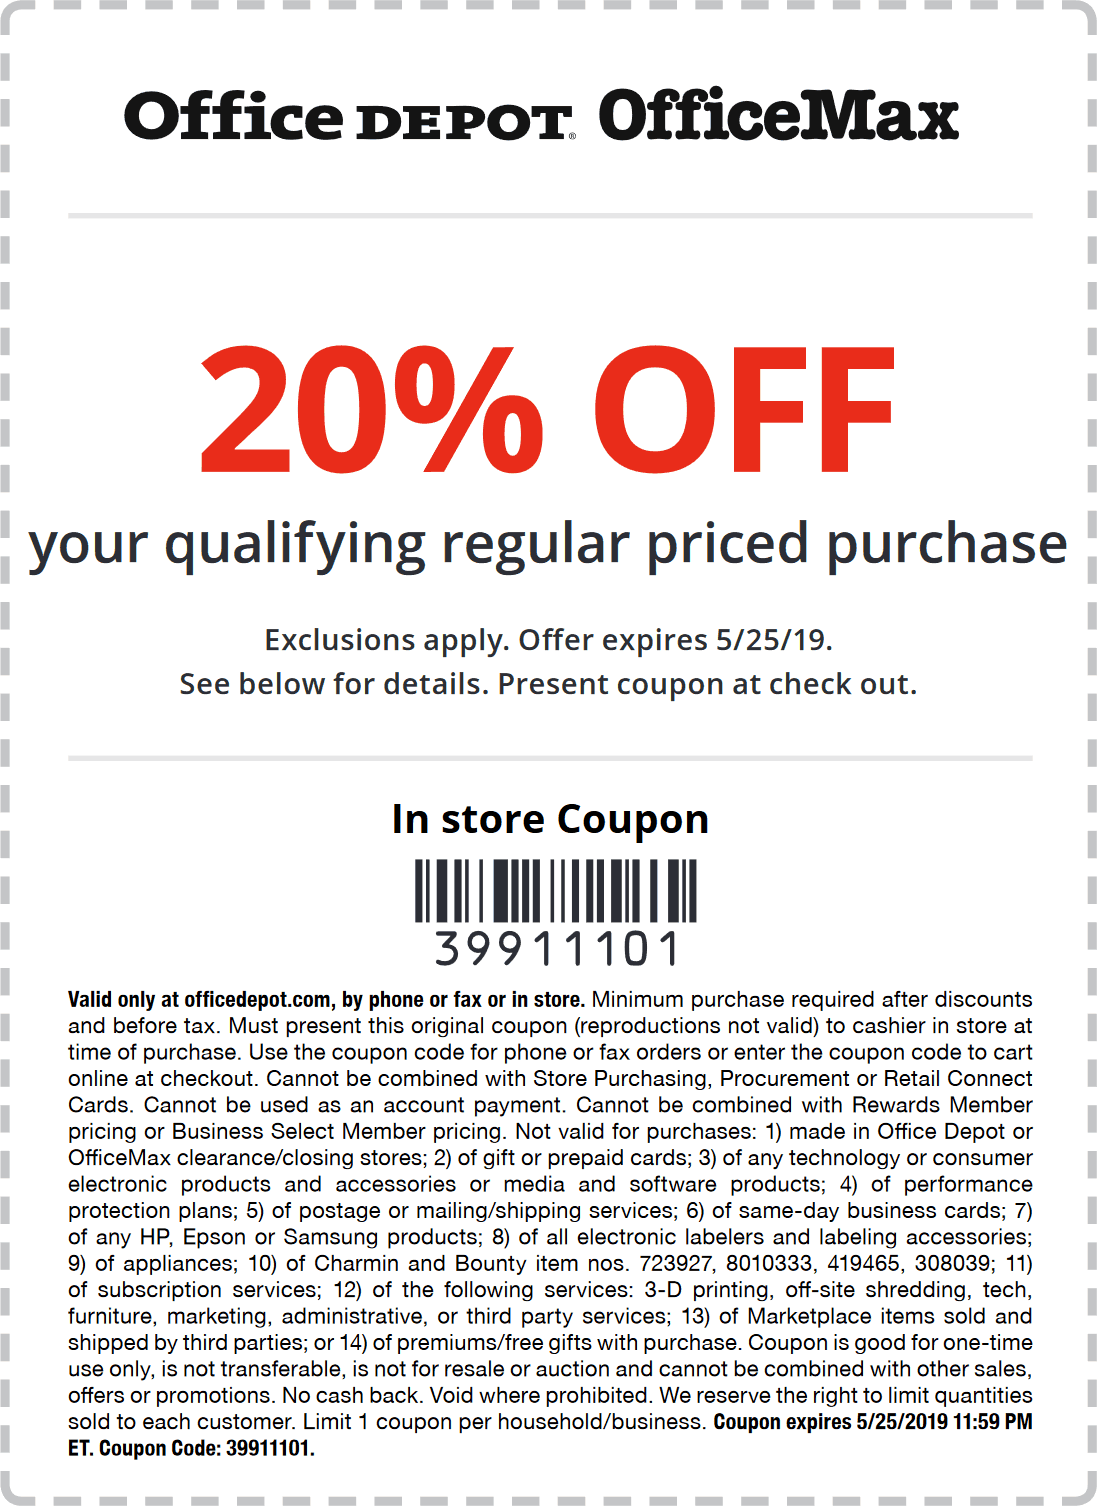 OfficeDepot.com Promo Coupon 20% off at Office Depot & OfficeMax, or online via promo code 39911101